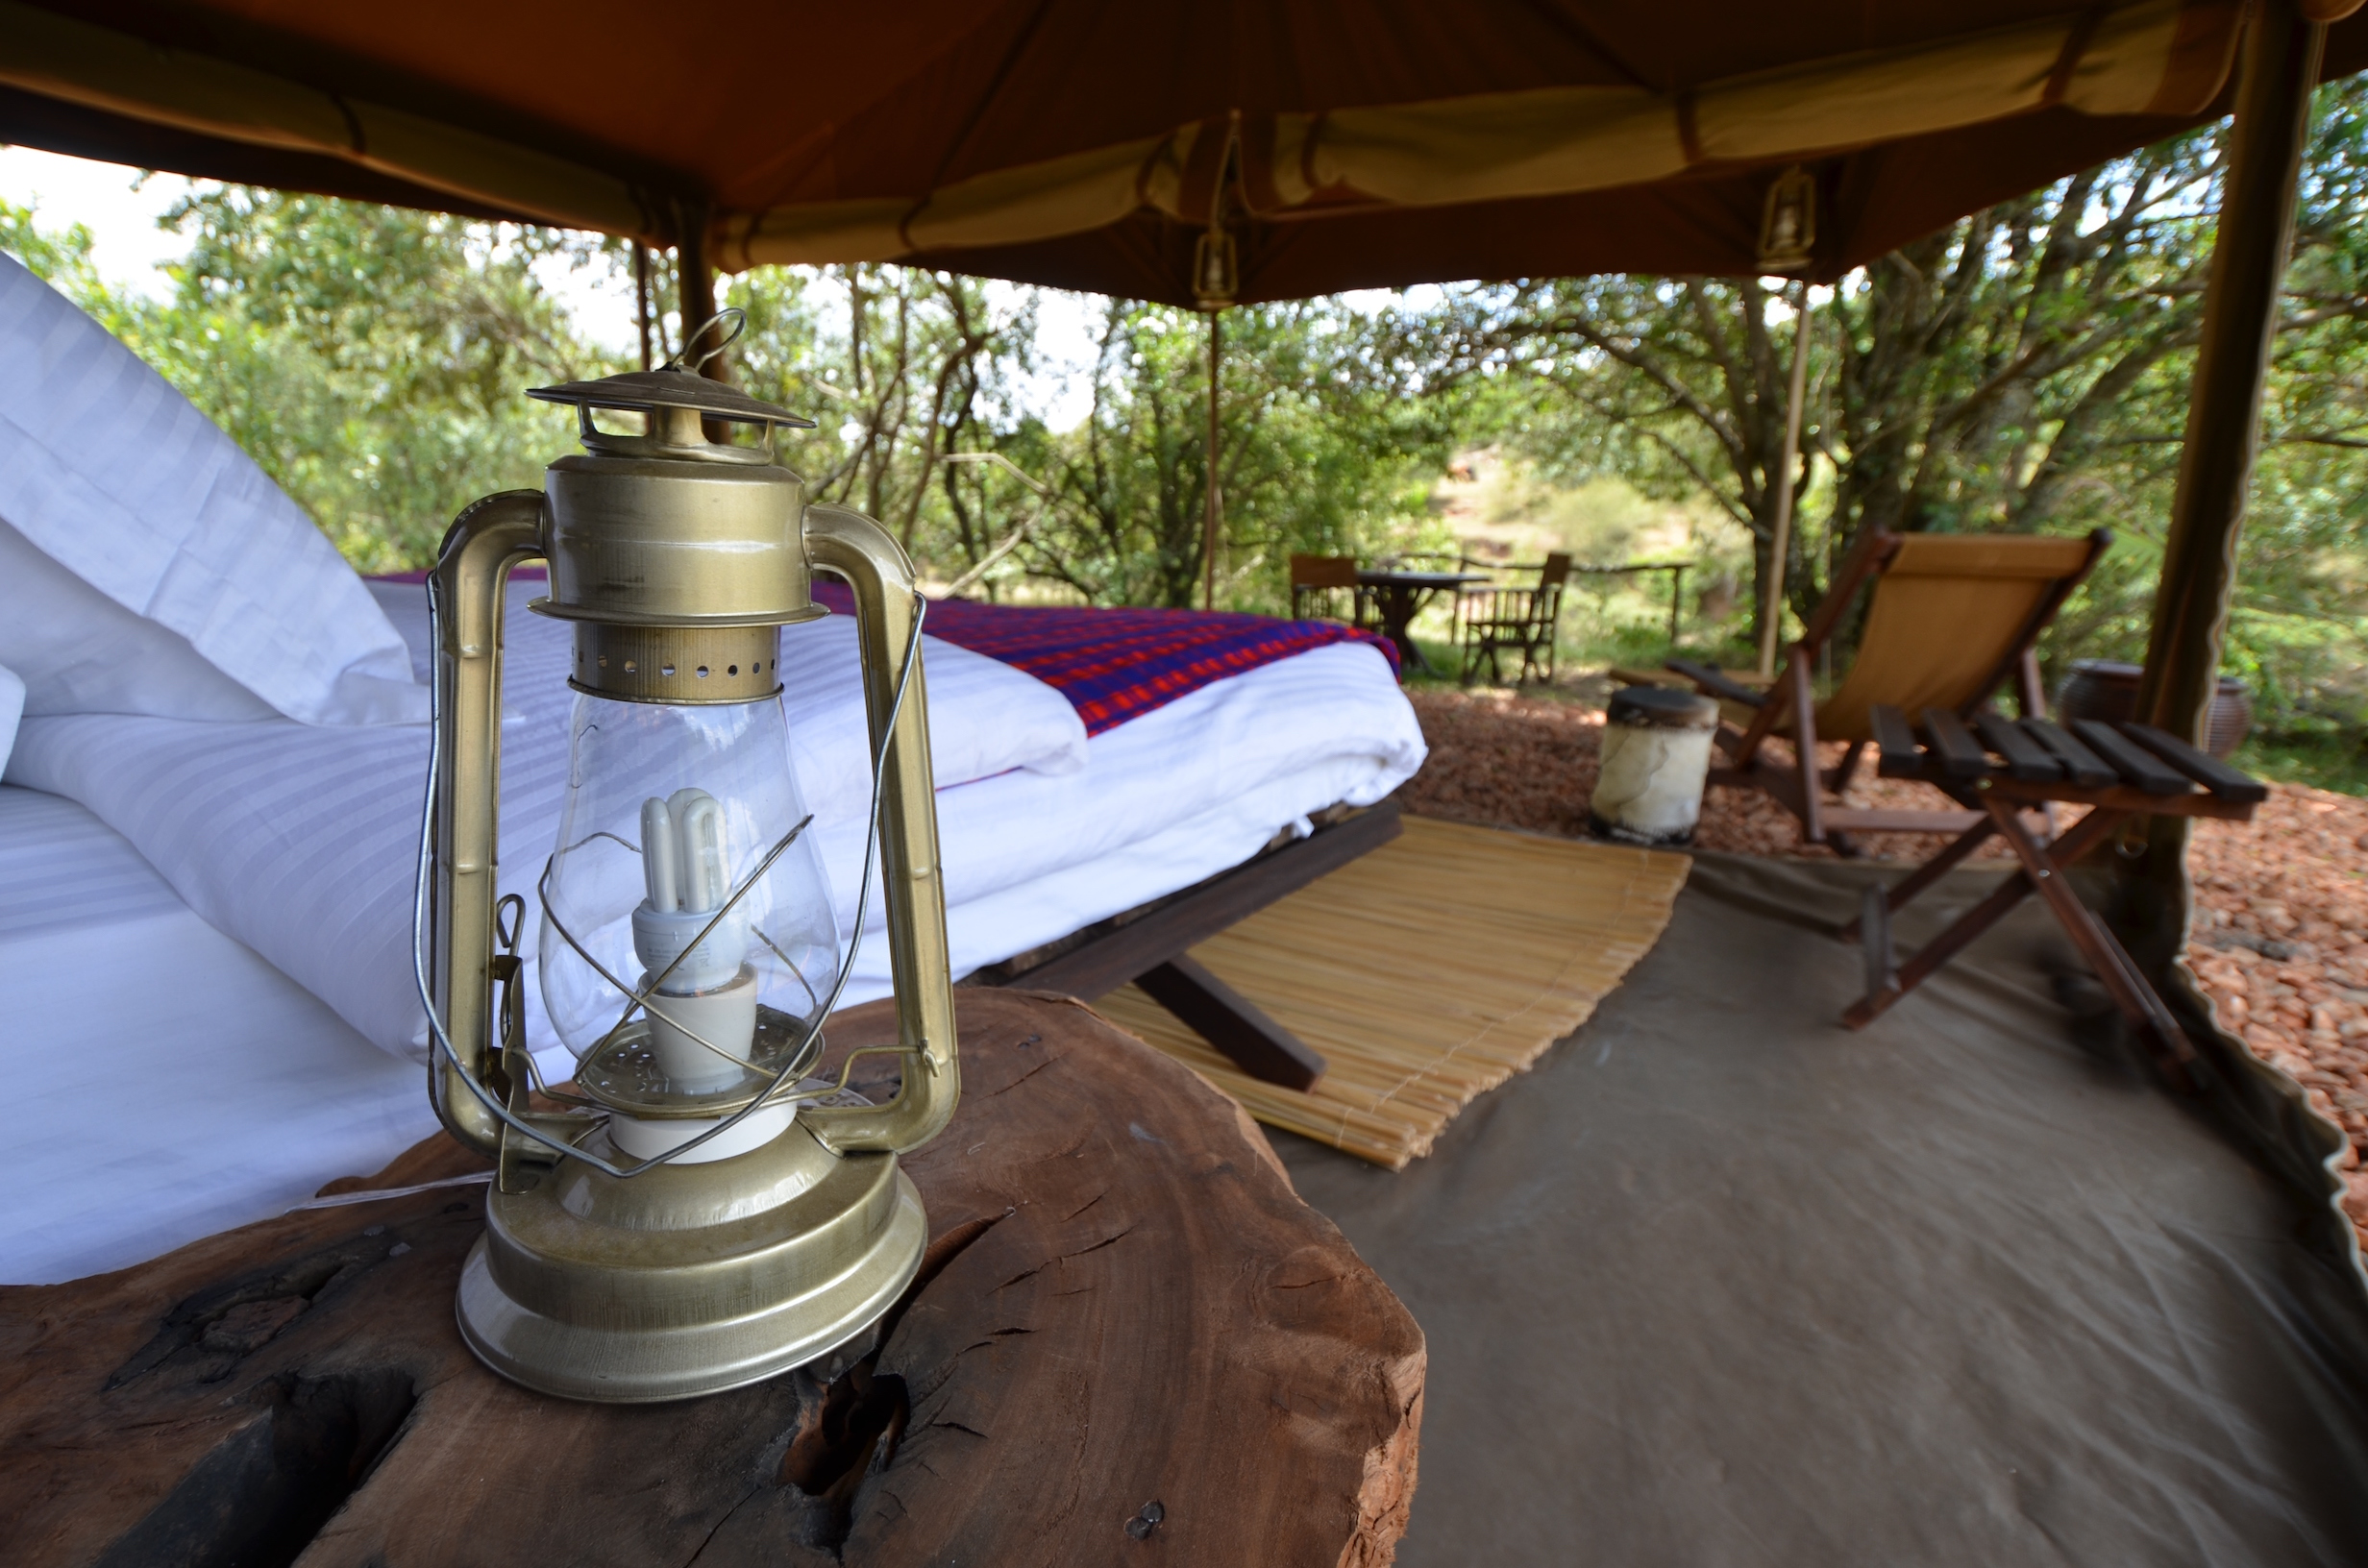 Safari tent with gas lamp